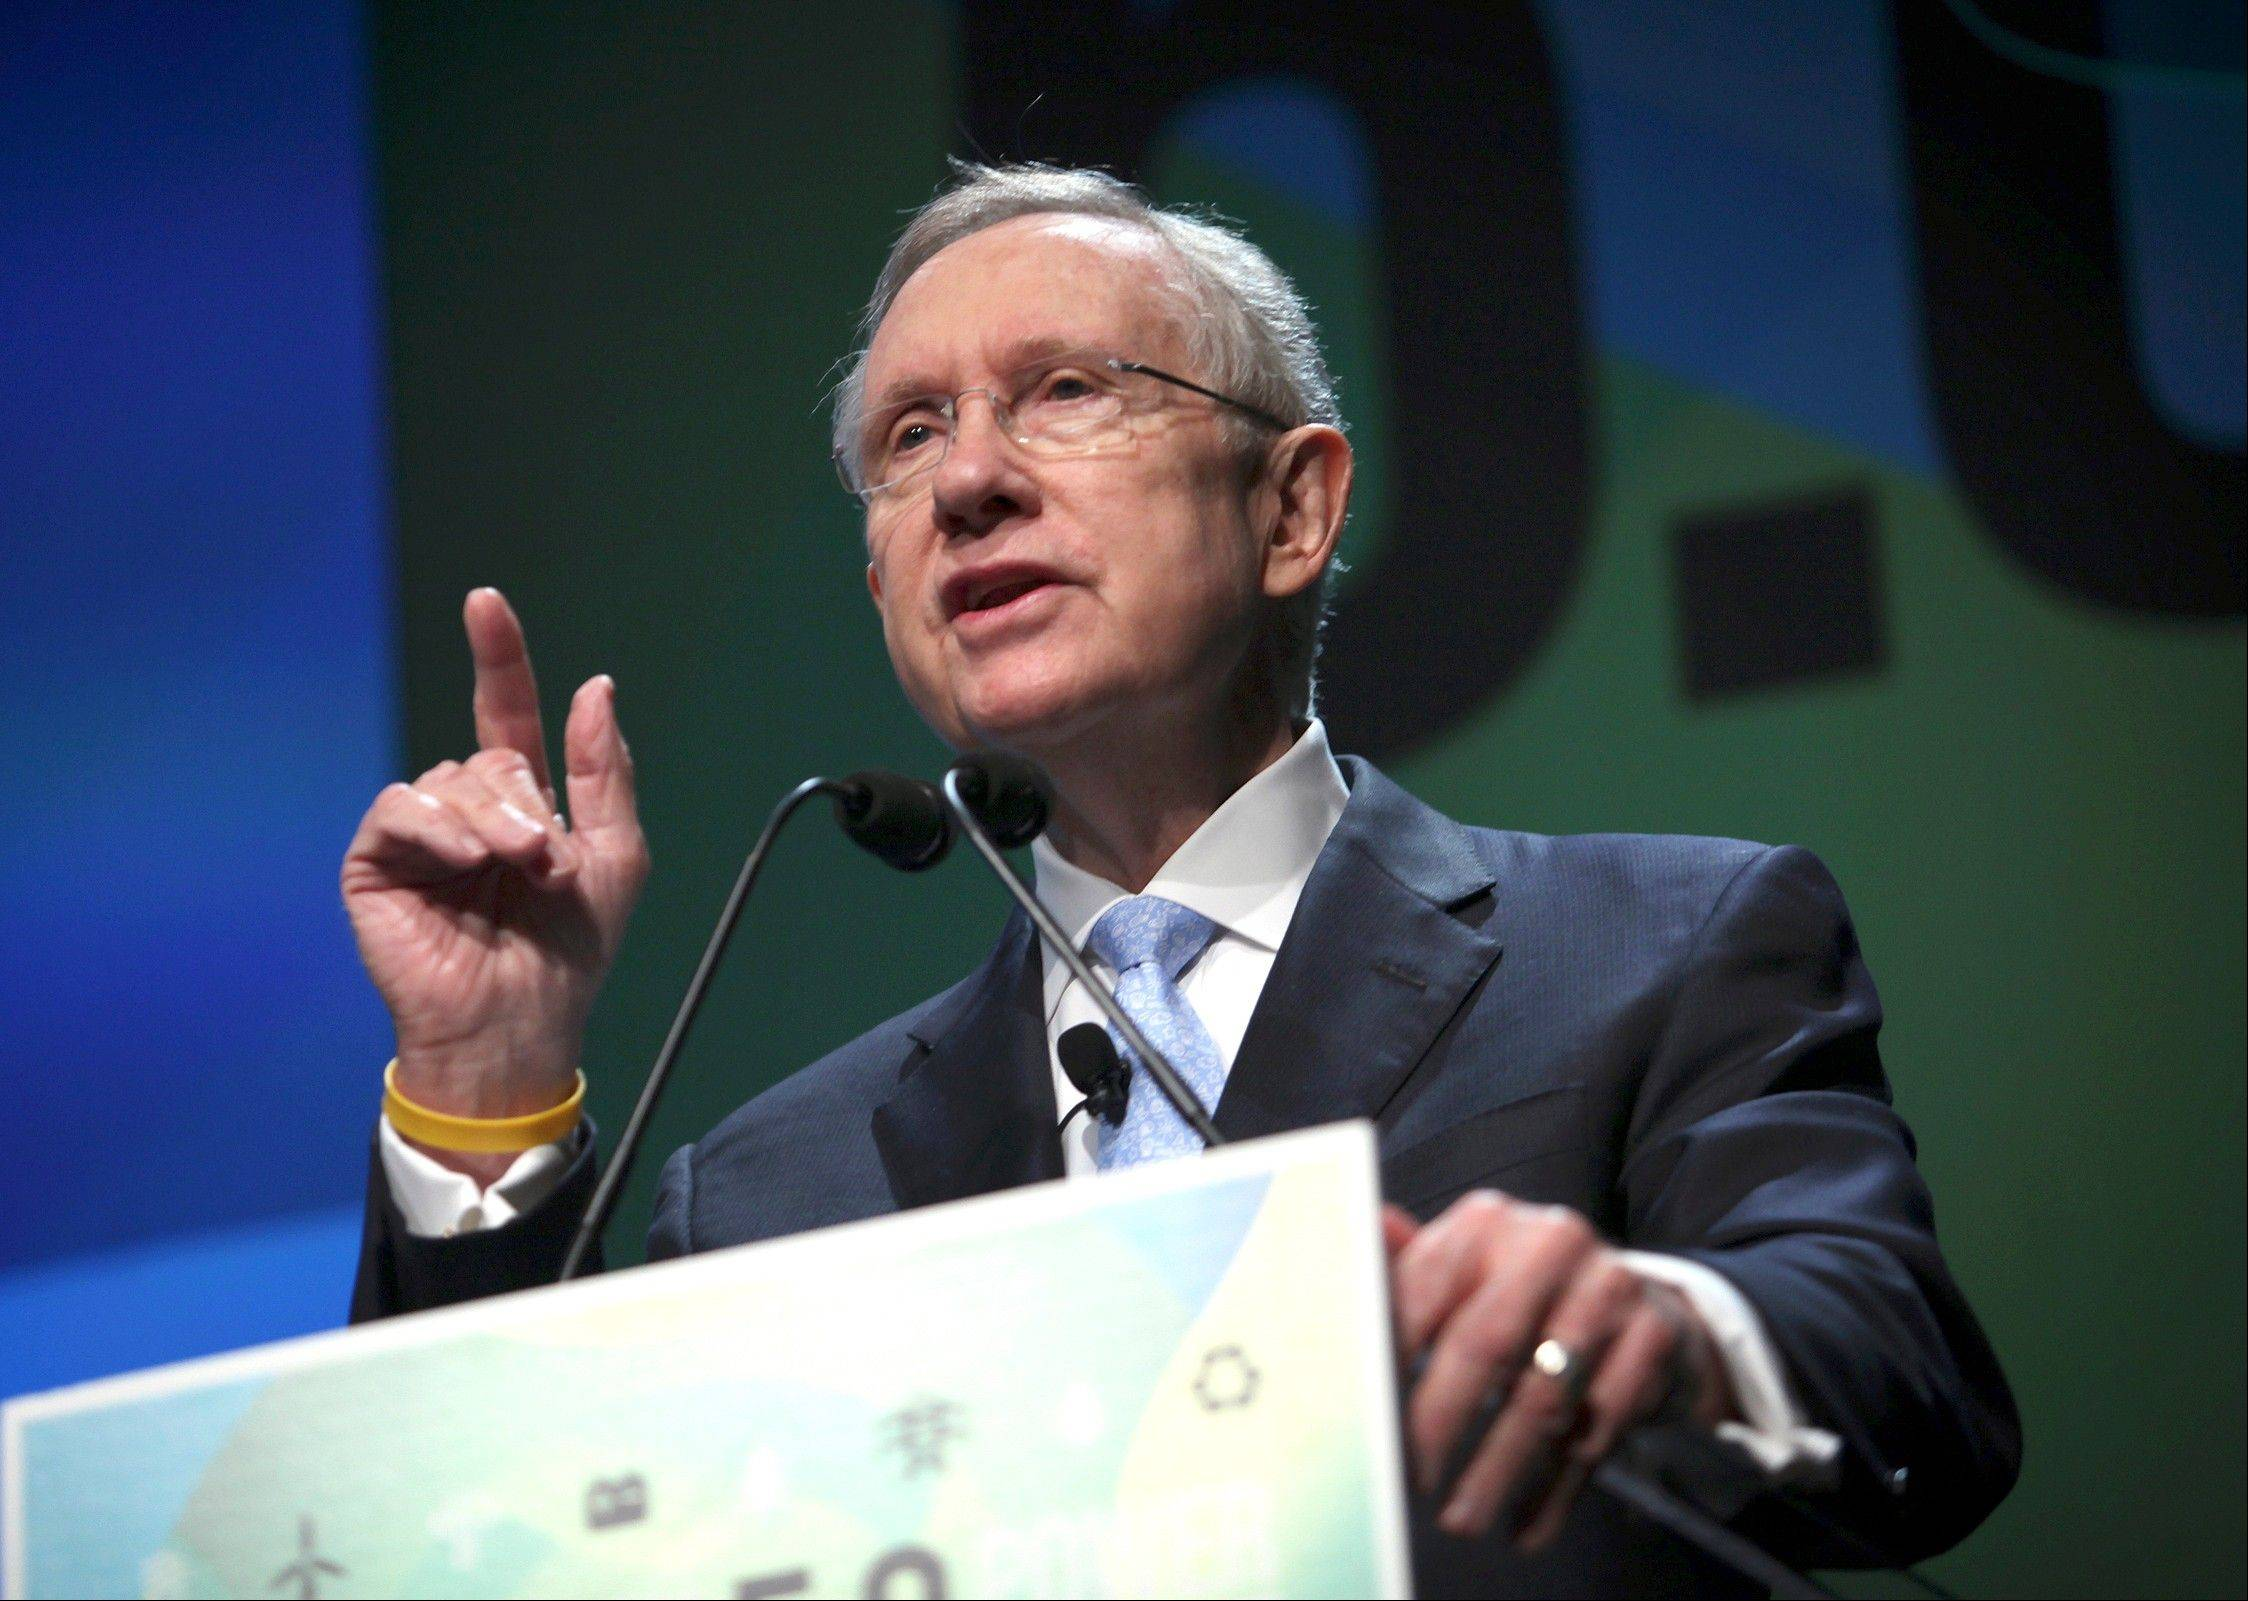 U.S. Sen. Harry Reid, D-Nev., speaks at the National Clean Energy Summit at the Bellagio in Las Vegas on Aug. 7. On Aug. 2, Reid claimed that presumptive Republican nominee Mitt Romney has paid no taxes for 10 years. Republicans and the Romney campaign have challenged the claim, and Reid has not named his anonymous source or sources.